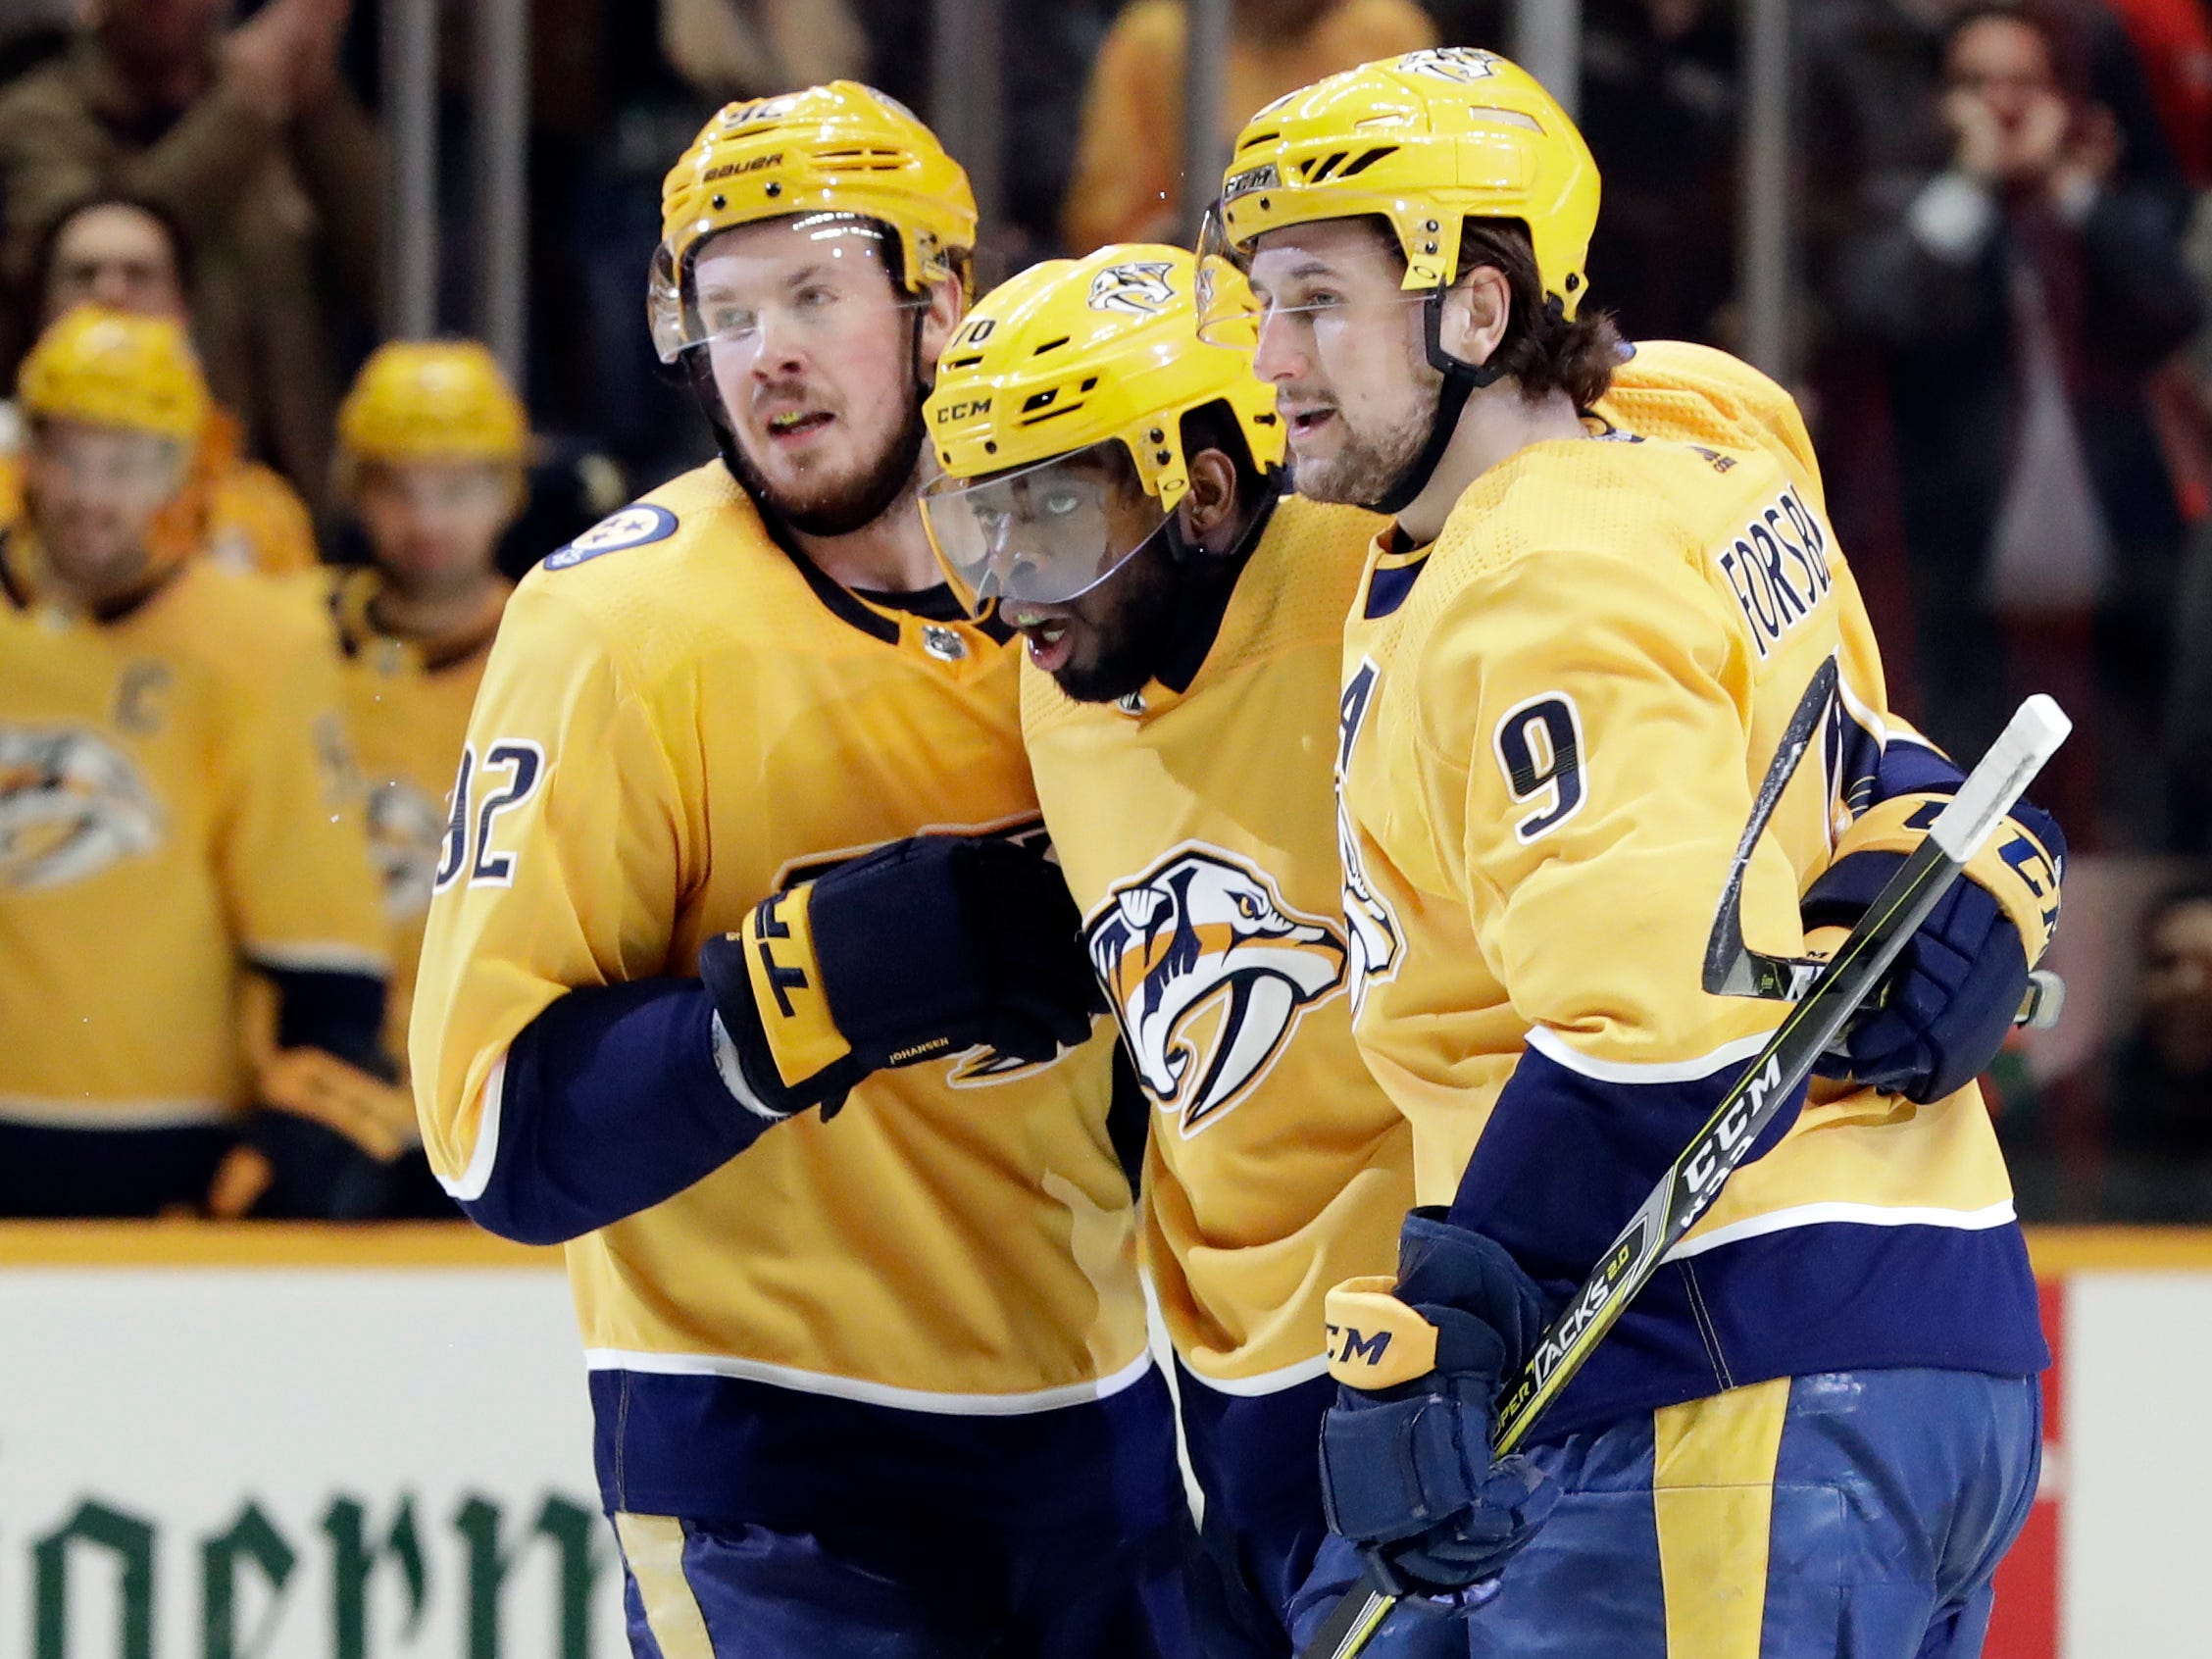 Nashville Predators defenseman P.K. Subban, center, celebrates with Ryan Johansen (92) and Filip Forsberg (9), of Sweden, after Subban scored against the Detroit Red Wings during the second period.